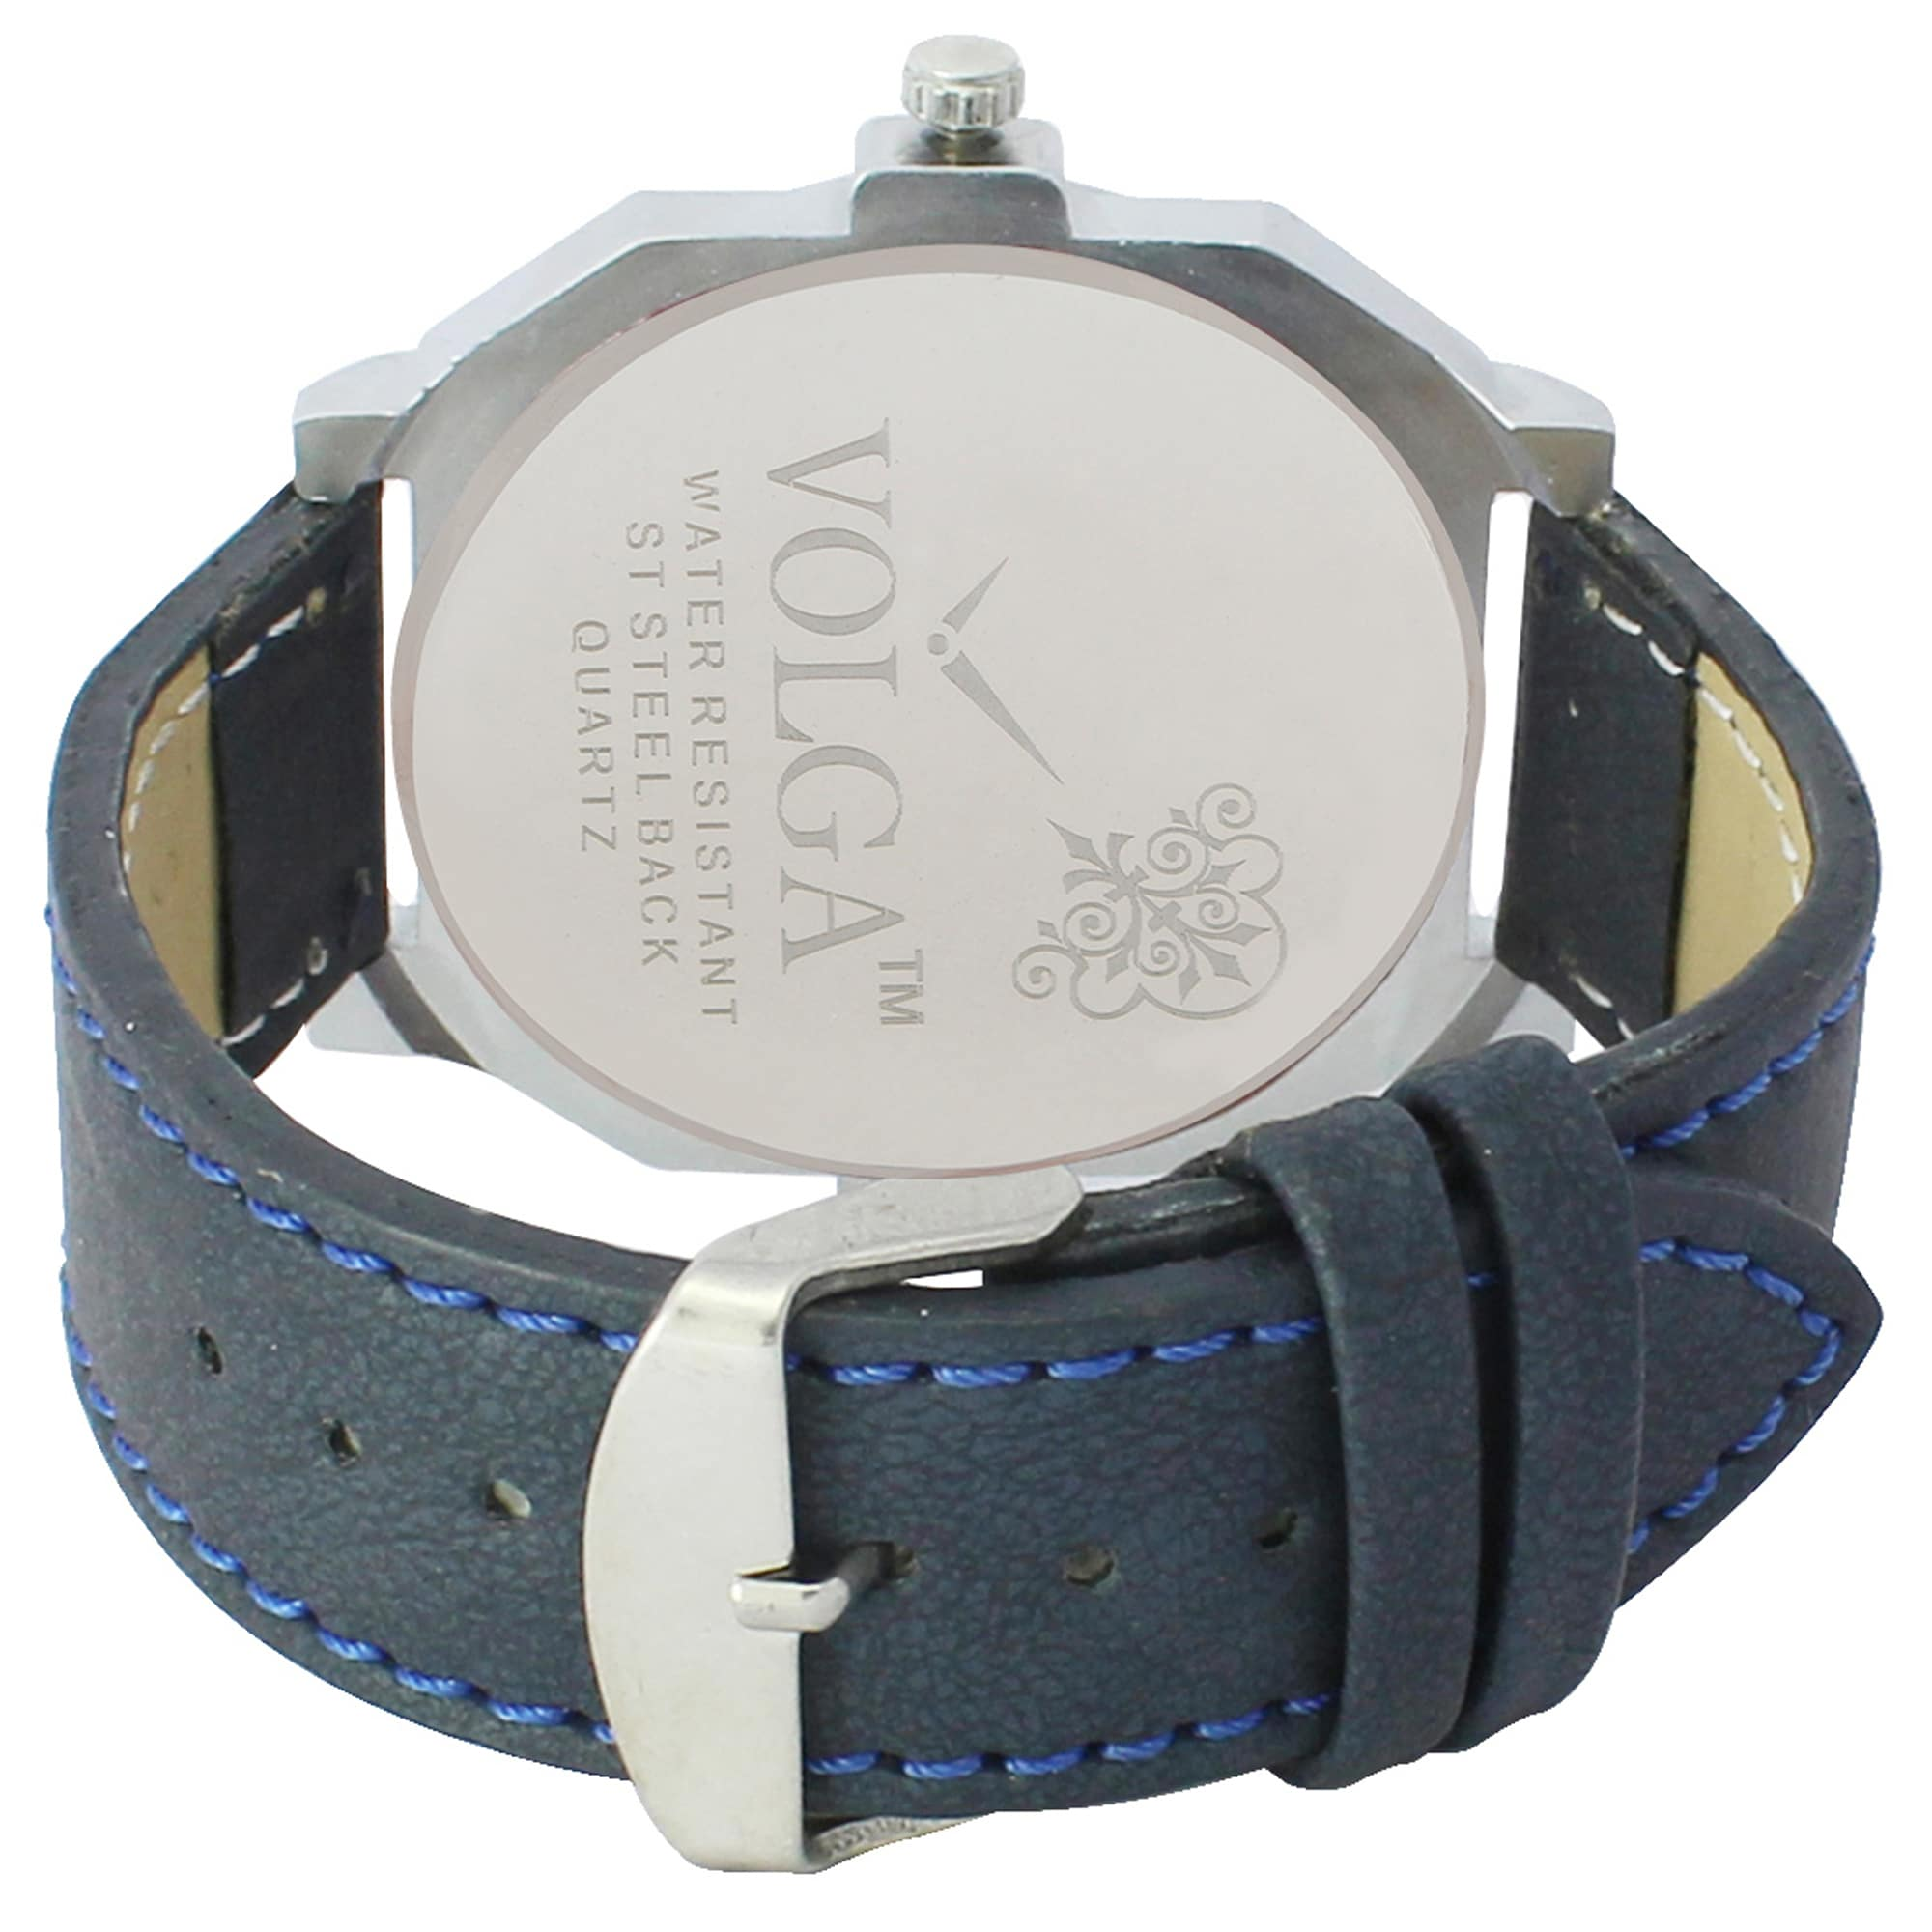 New Arrival Fashionable & Professional Blue Dial Black Strap Wrist Watch